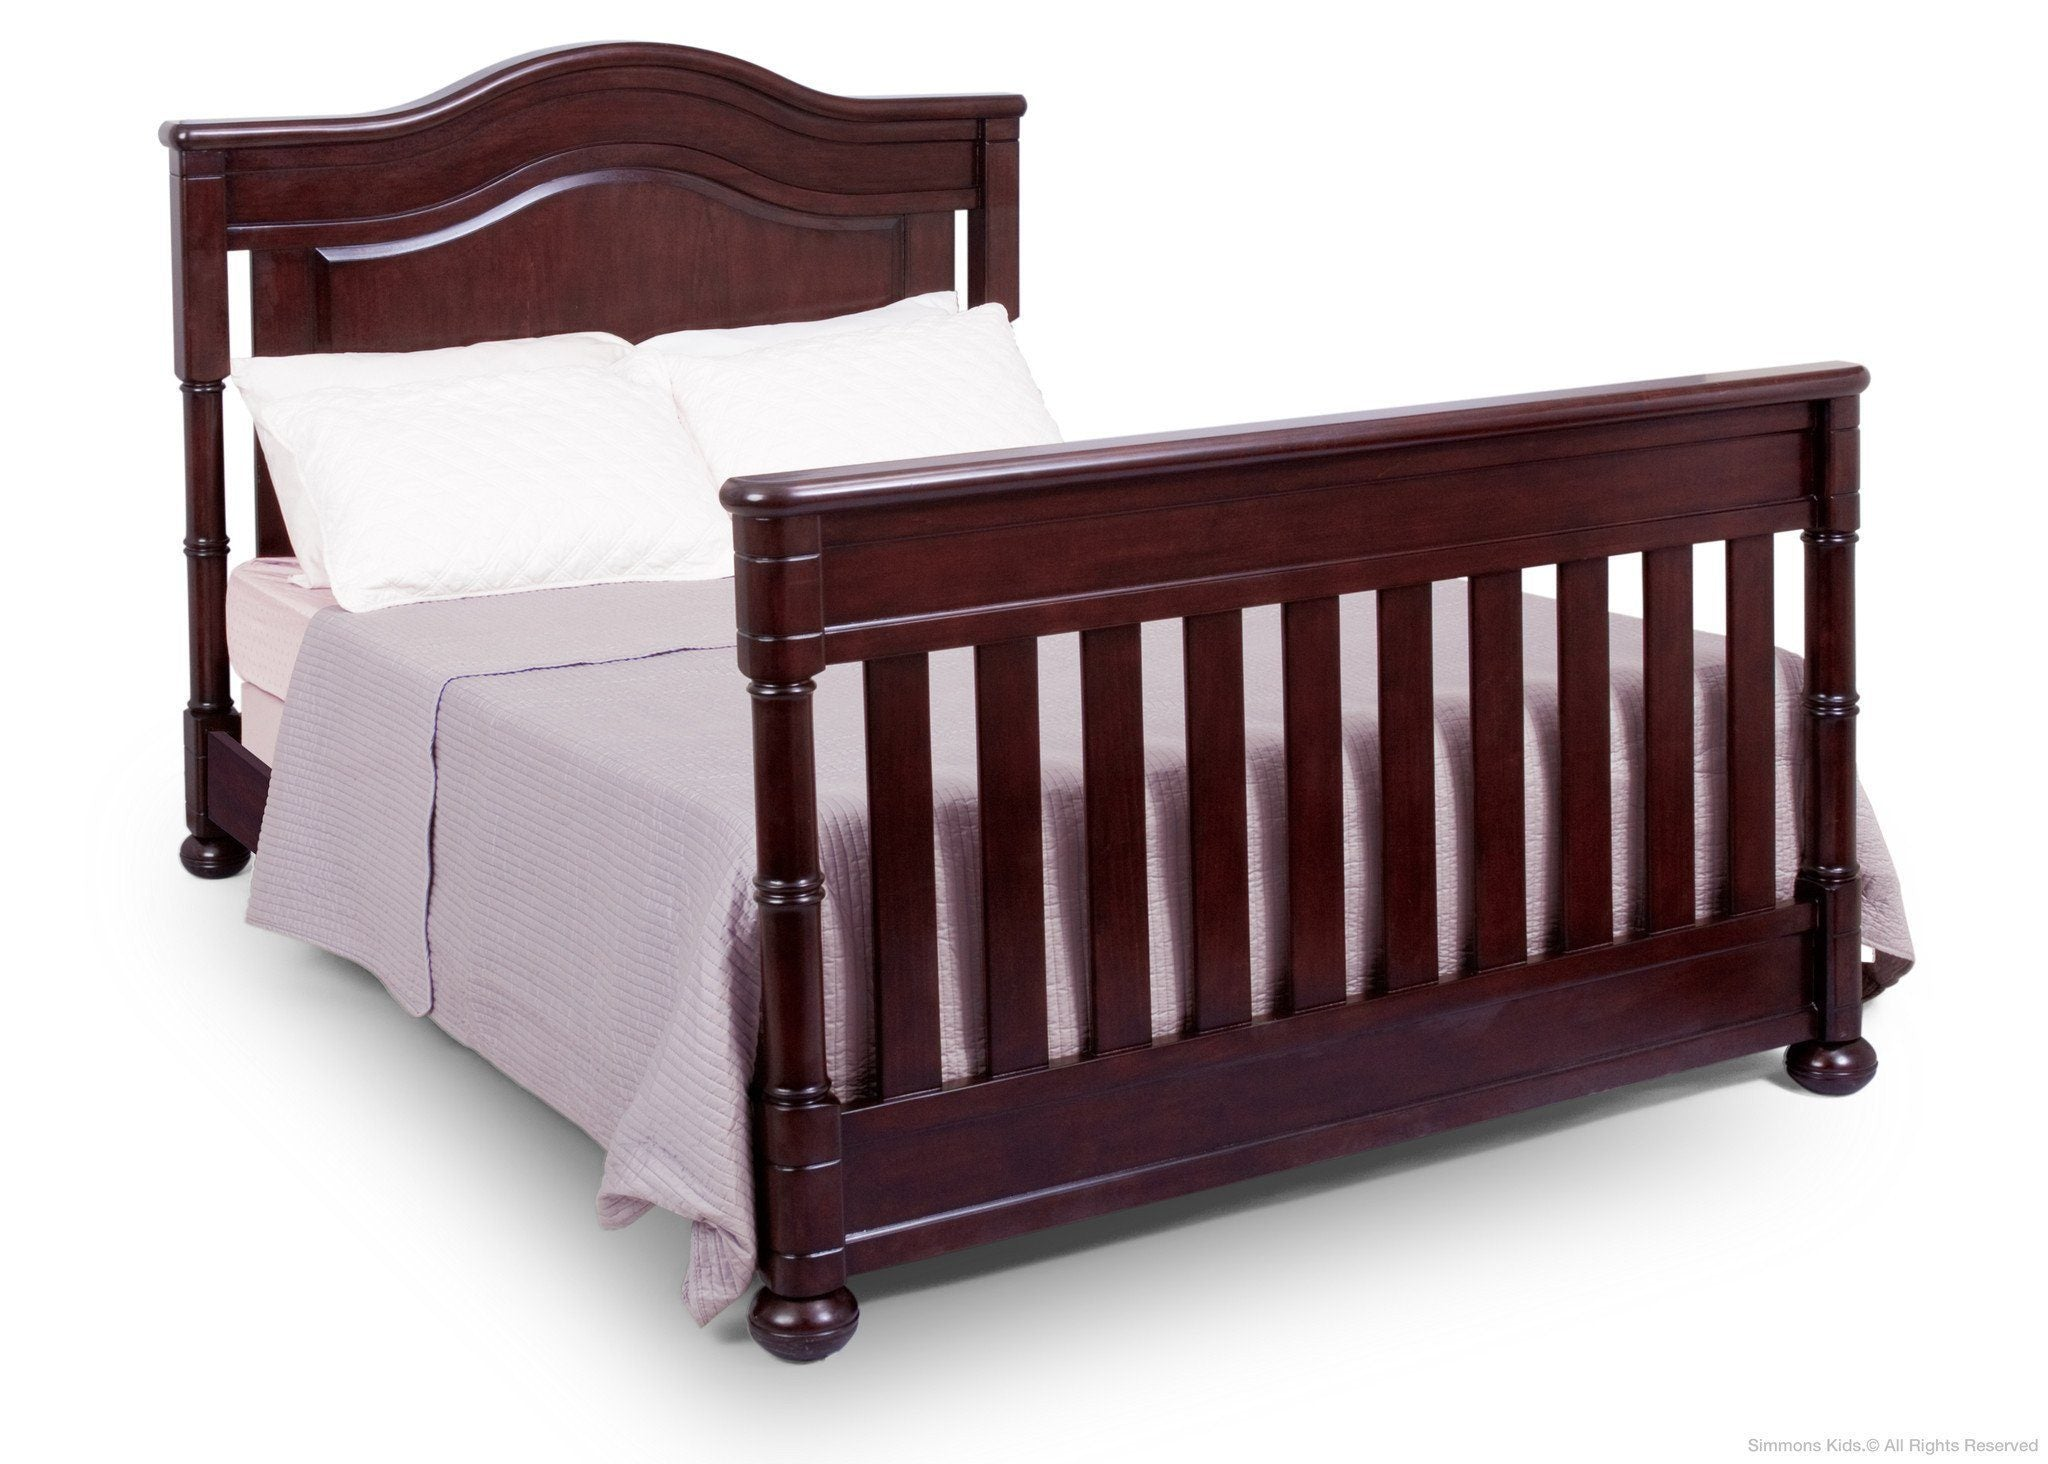 Simmons Kids Molasses (226) Highpoint Crib 'N' More (305180), Full-Size Bed Conversion a4a